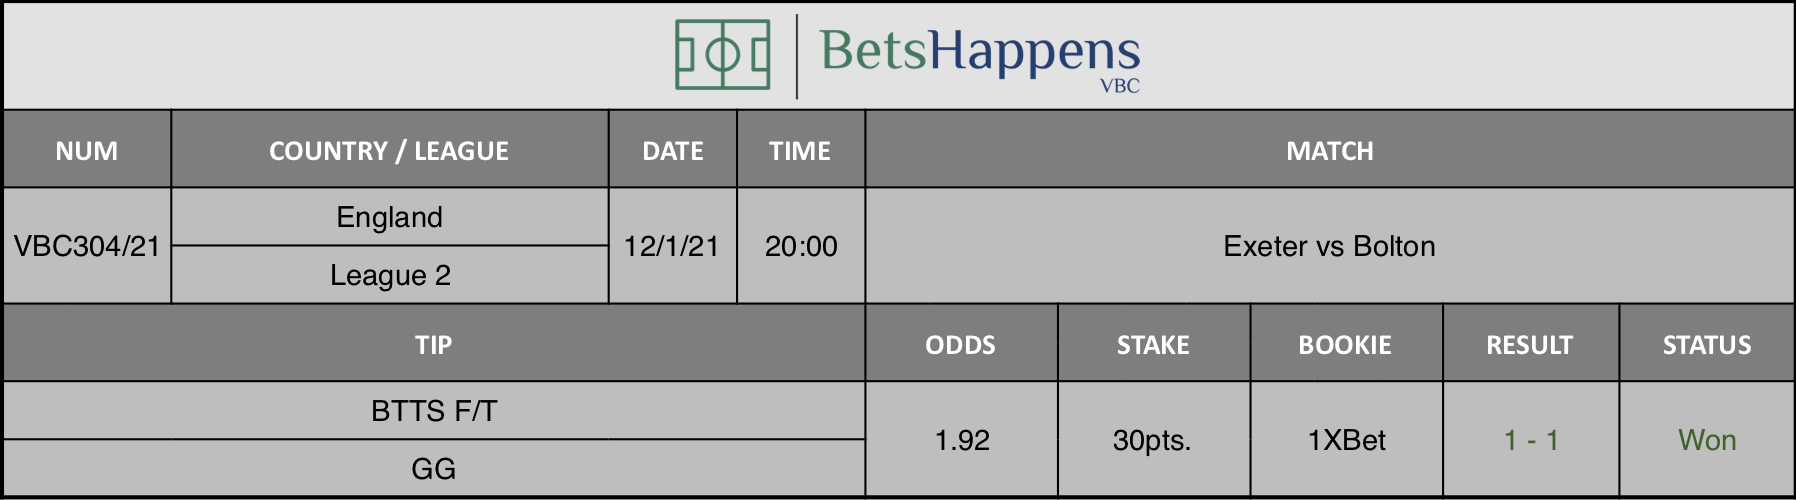 Results of our tip for the Exeter vs Bolton  match where BTTS F/T  GG is recommended.